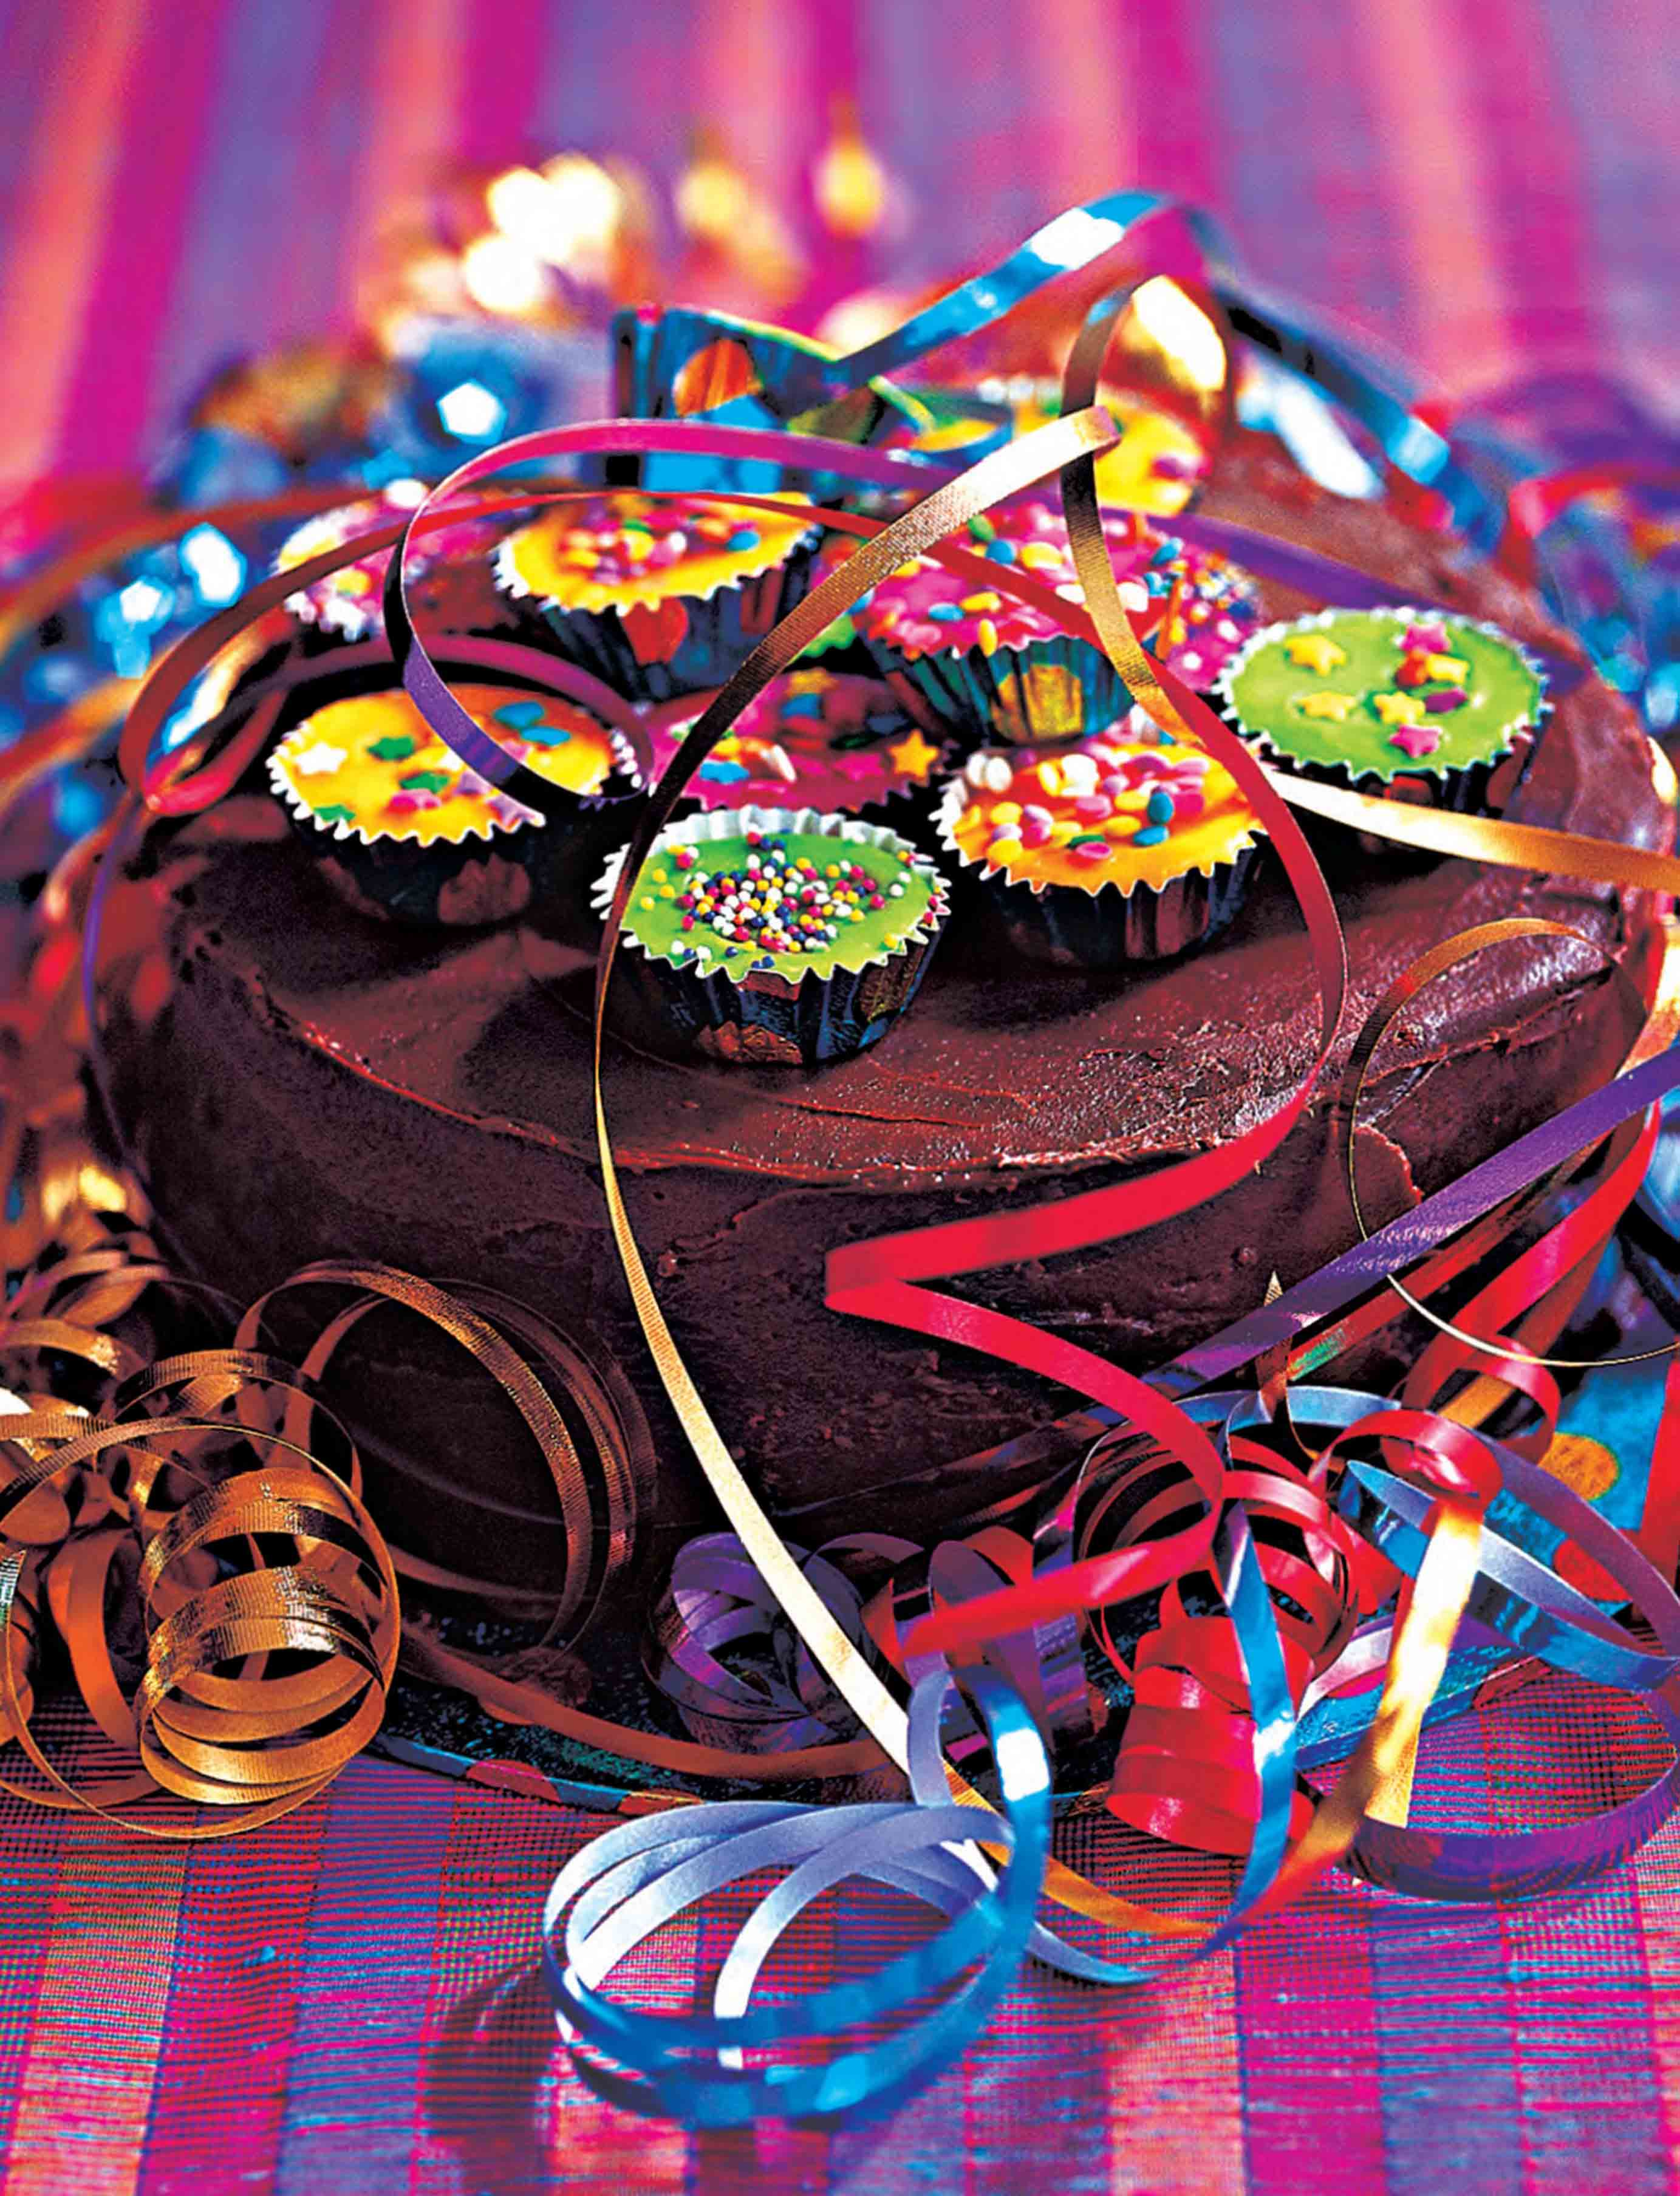 Party cake with streamers